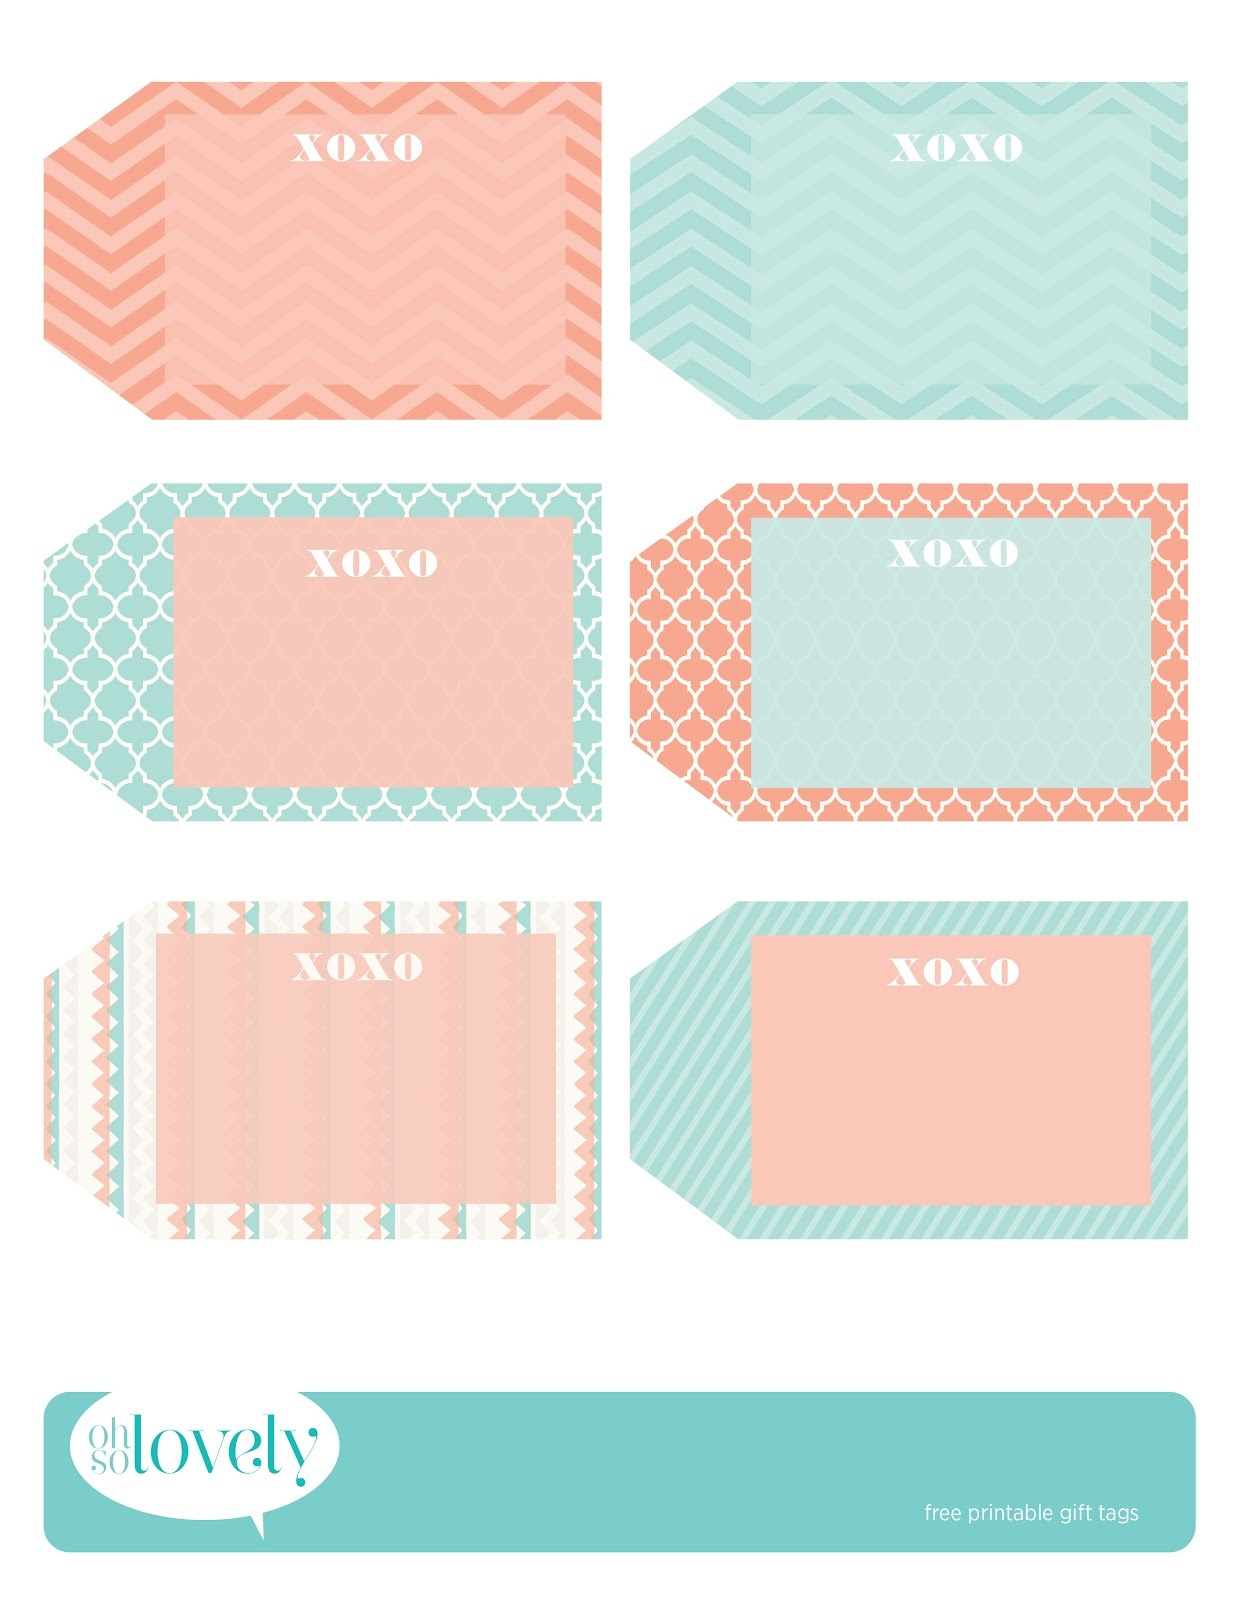 Freebies // Gift Tags - Oh So Lovely Blog - Free Printable Gift Tags